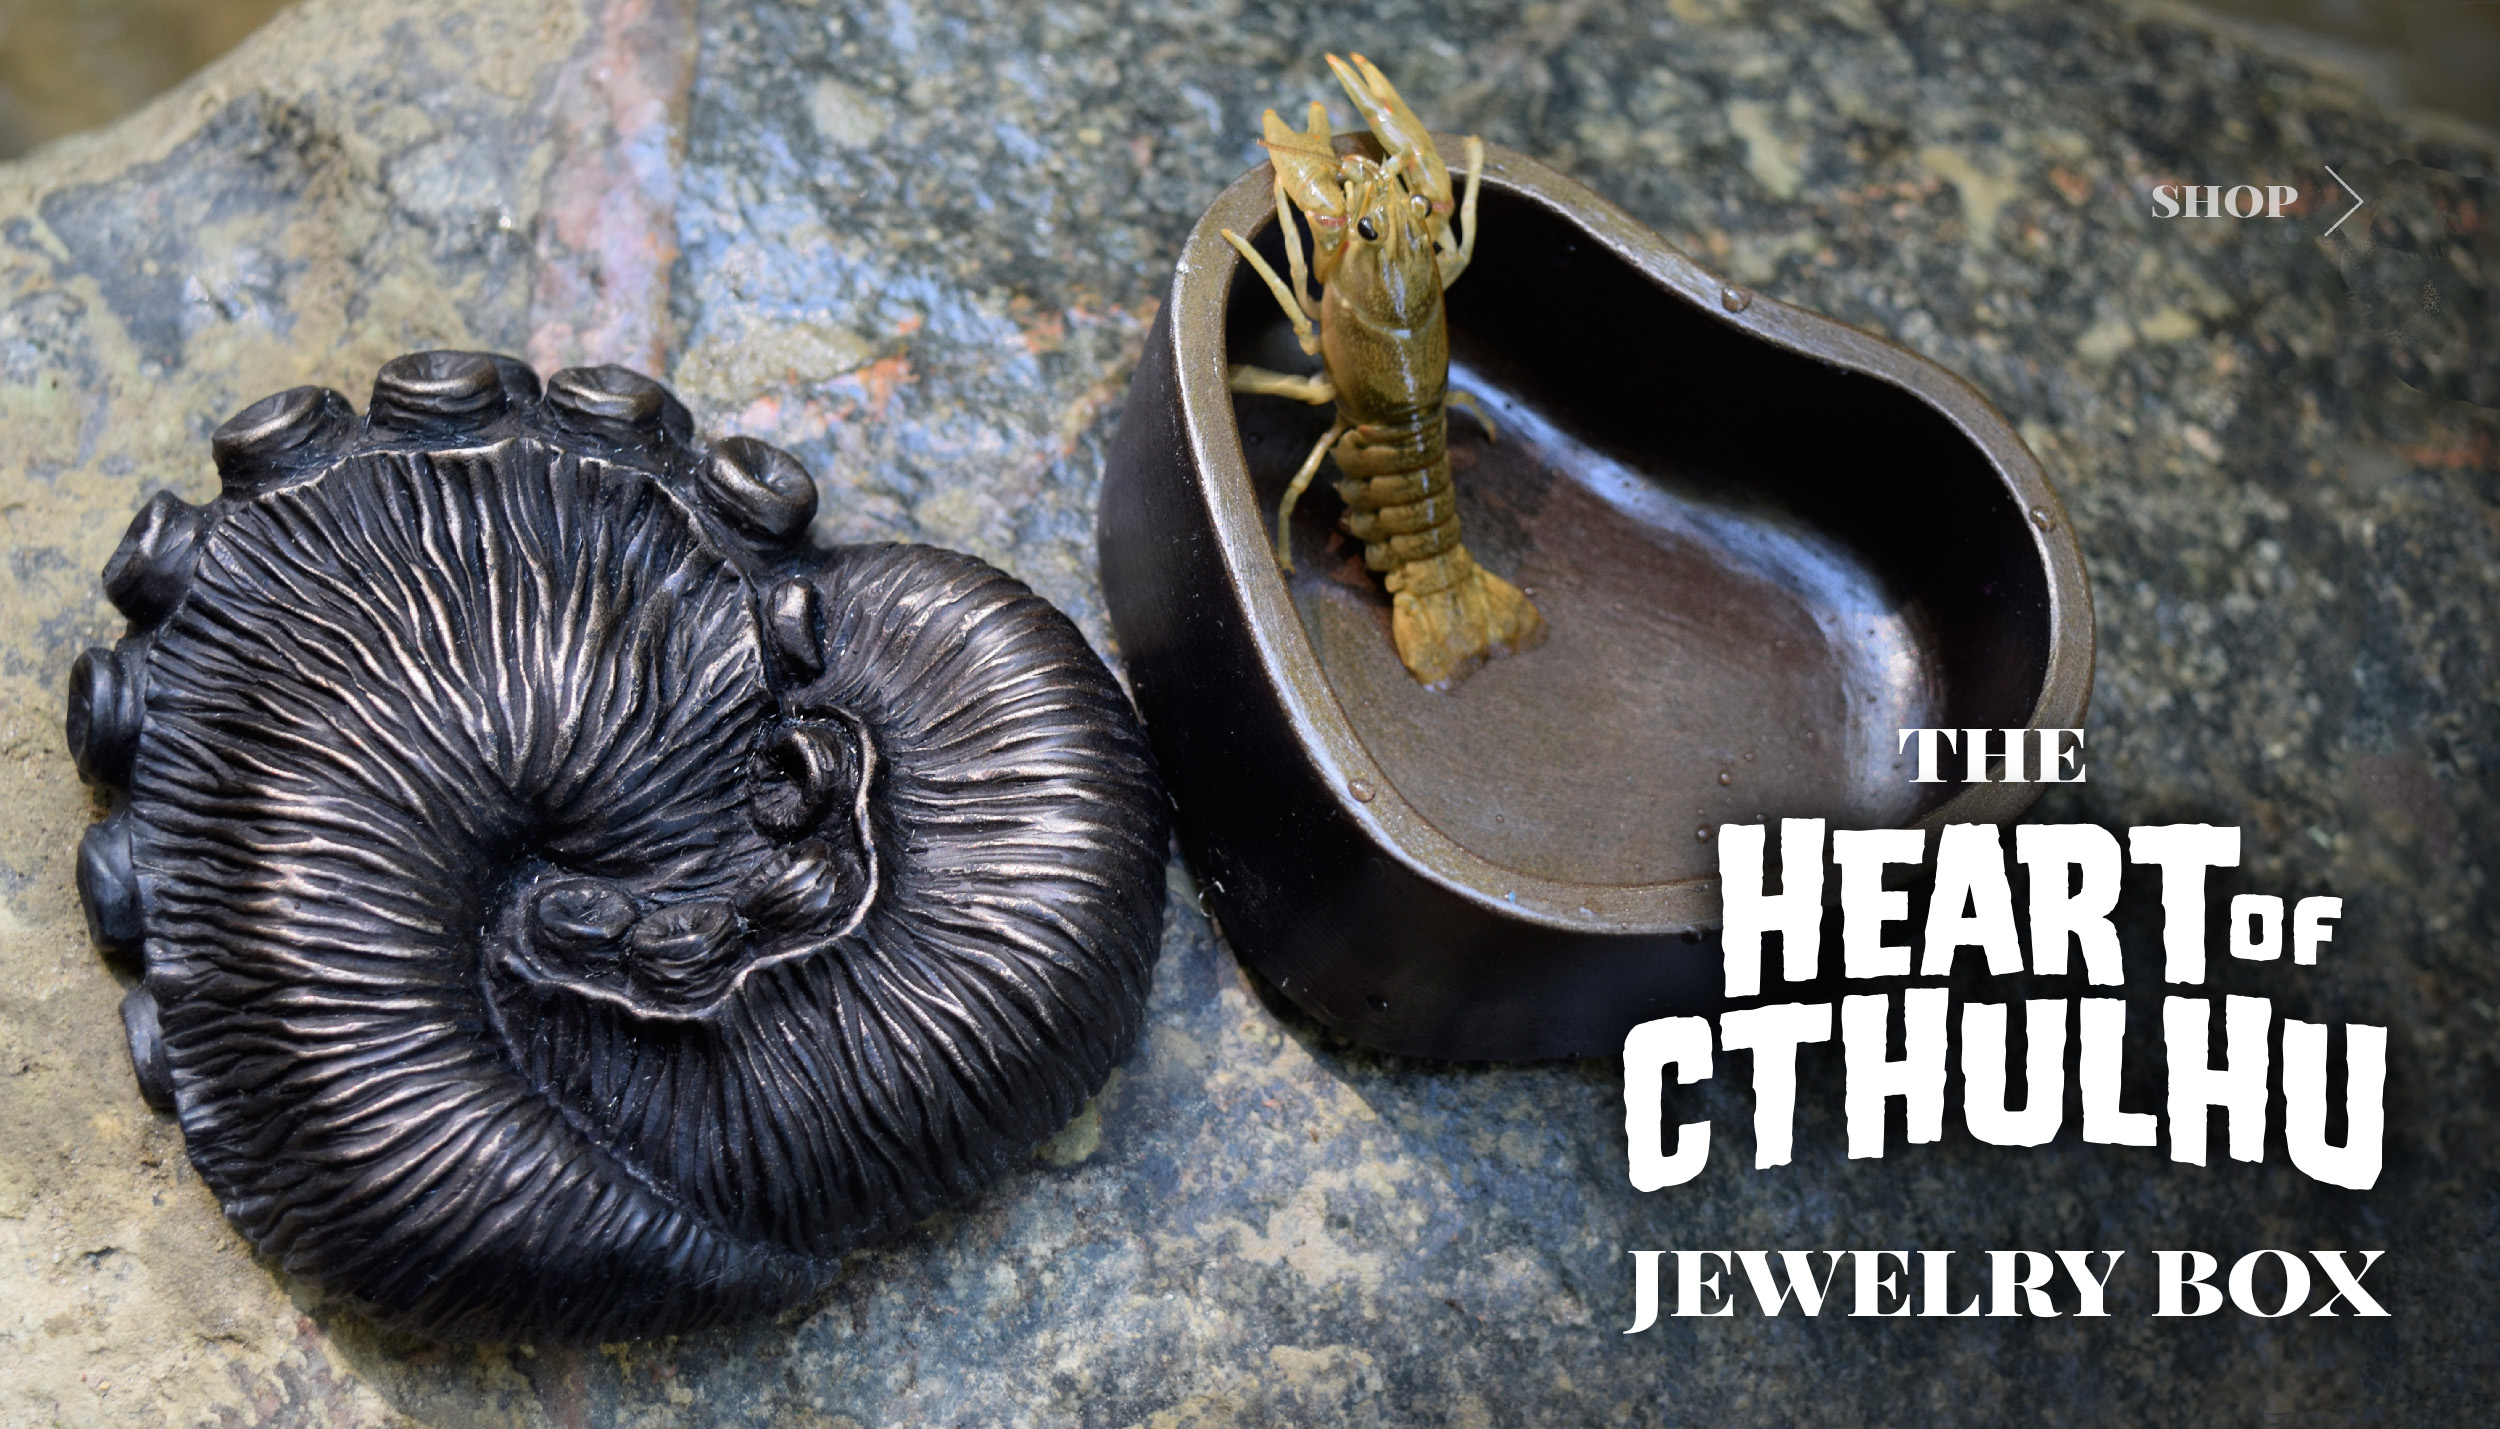 Heart of Cthulhu Jewelry Box